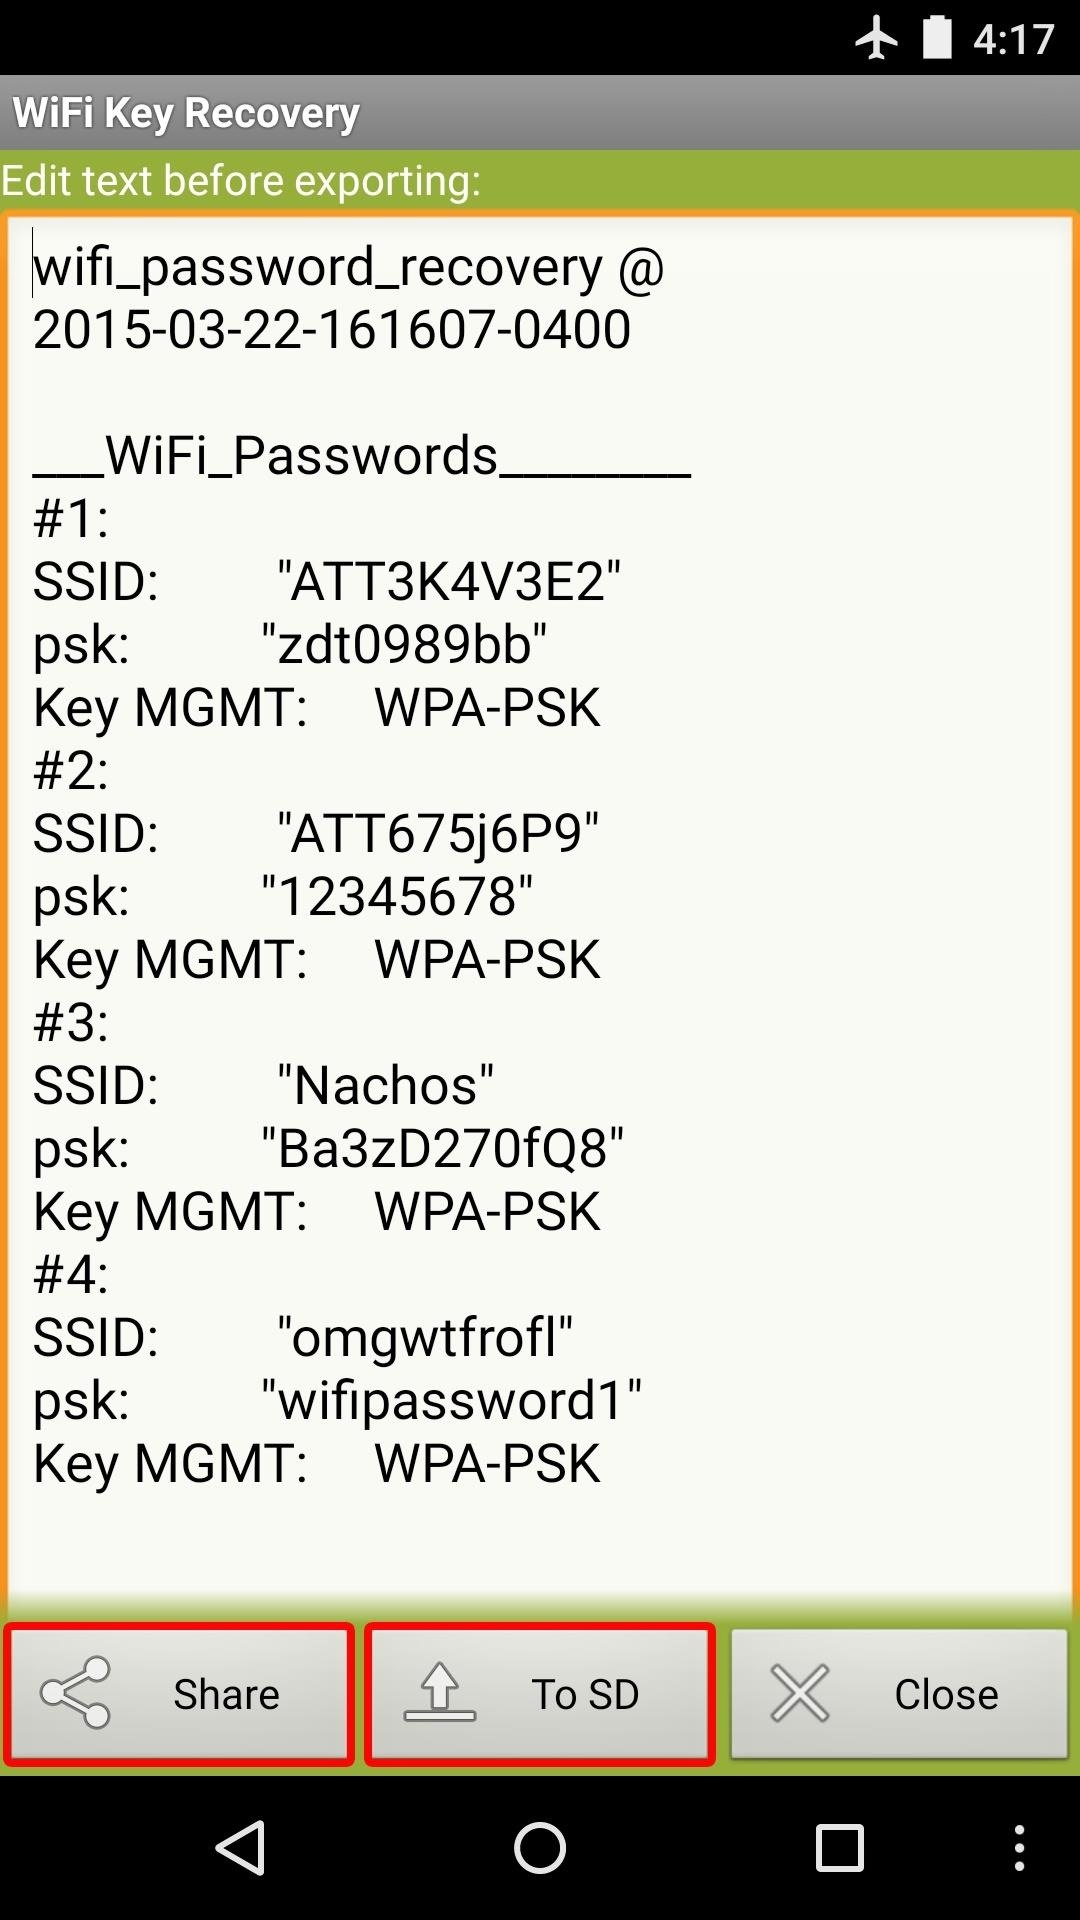 How to find out the password of your WiFi